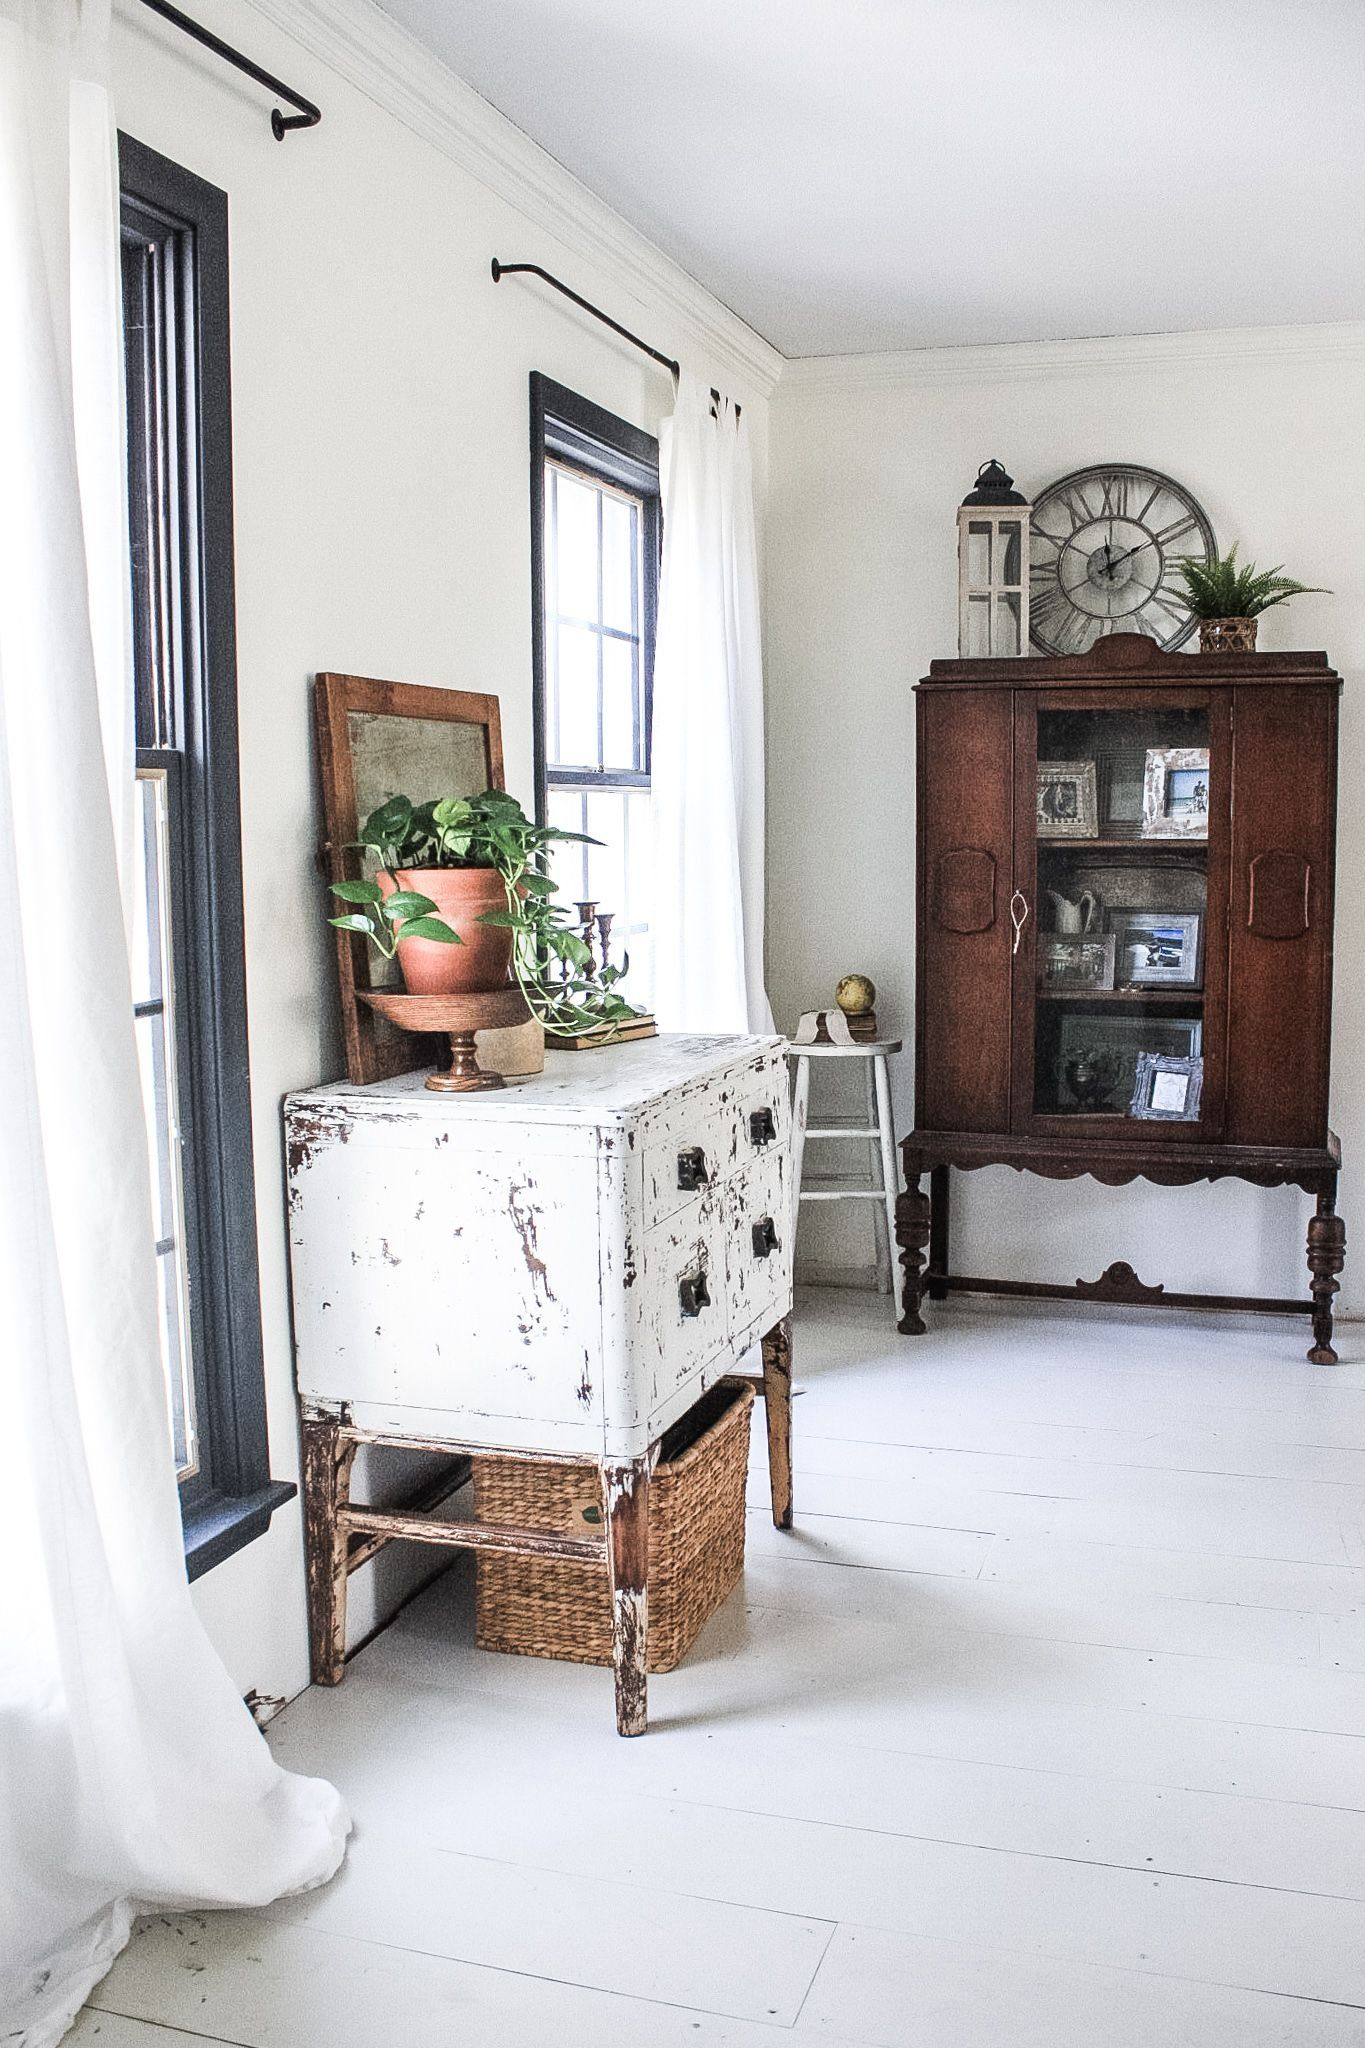 How to create a Farmhouse Style with Thrift Store